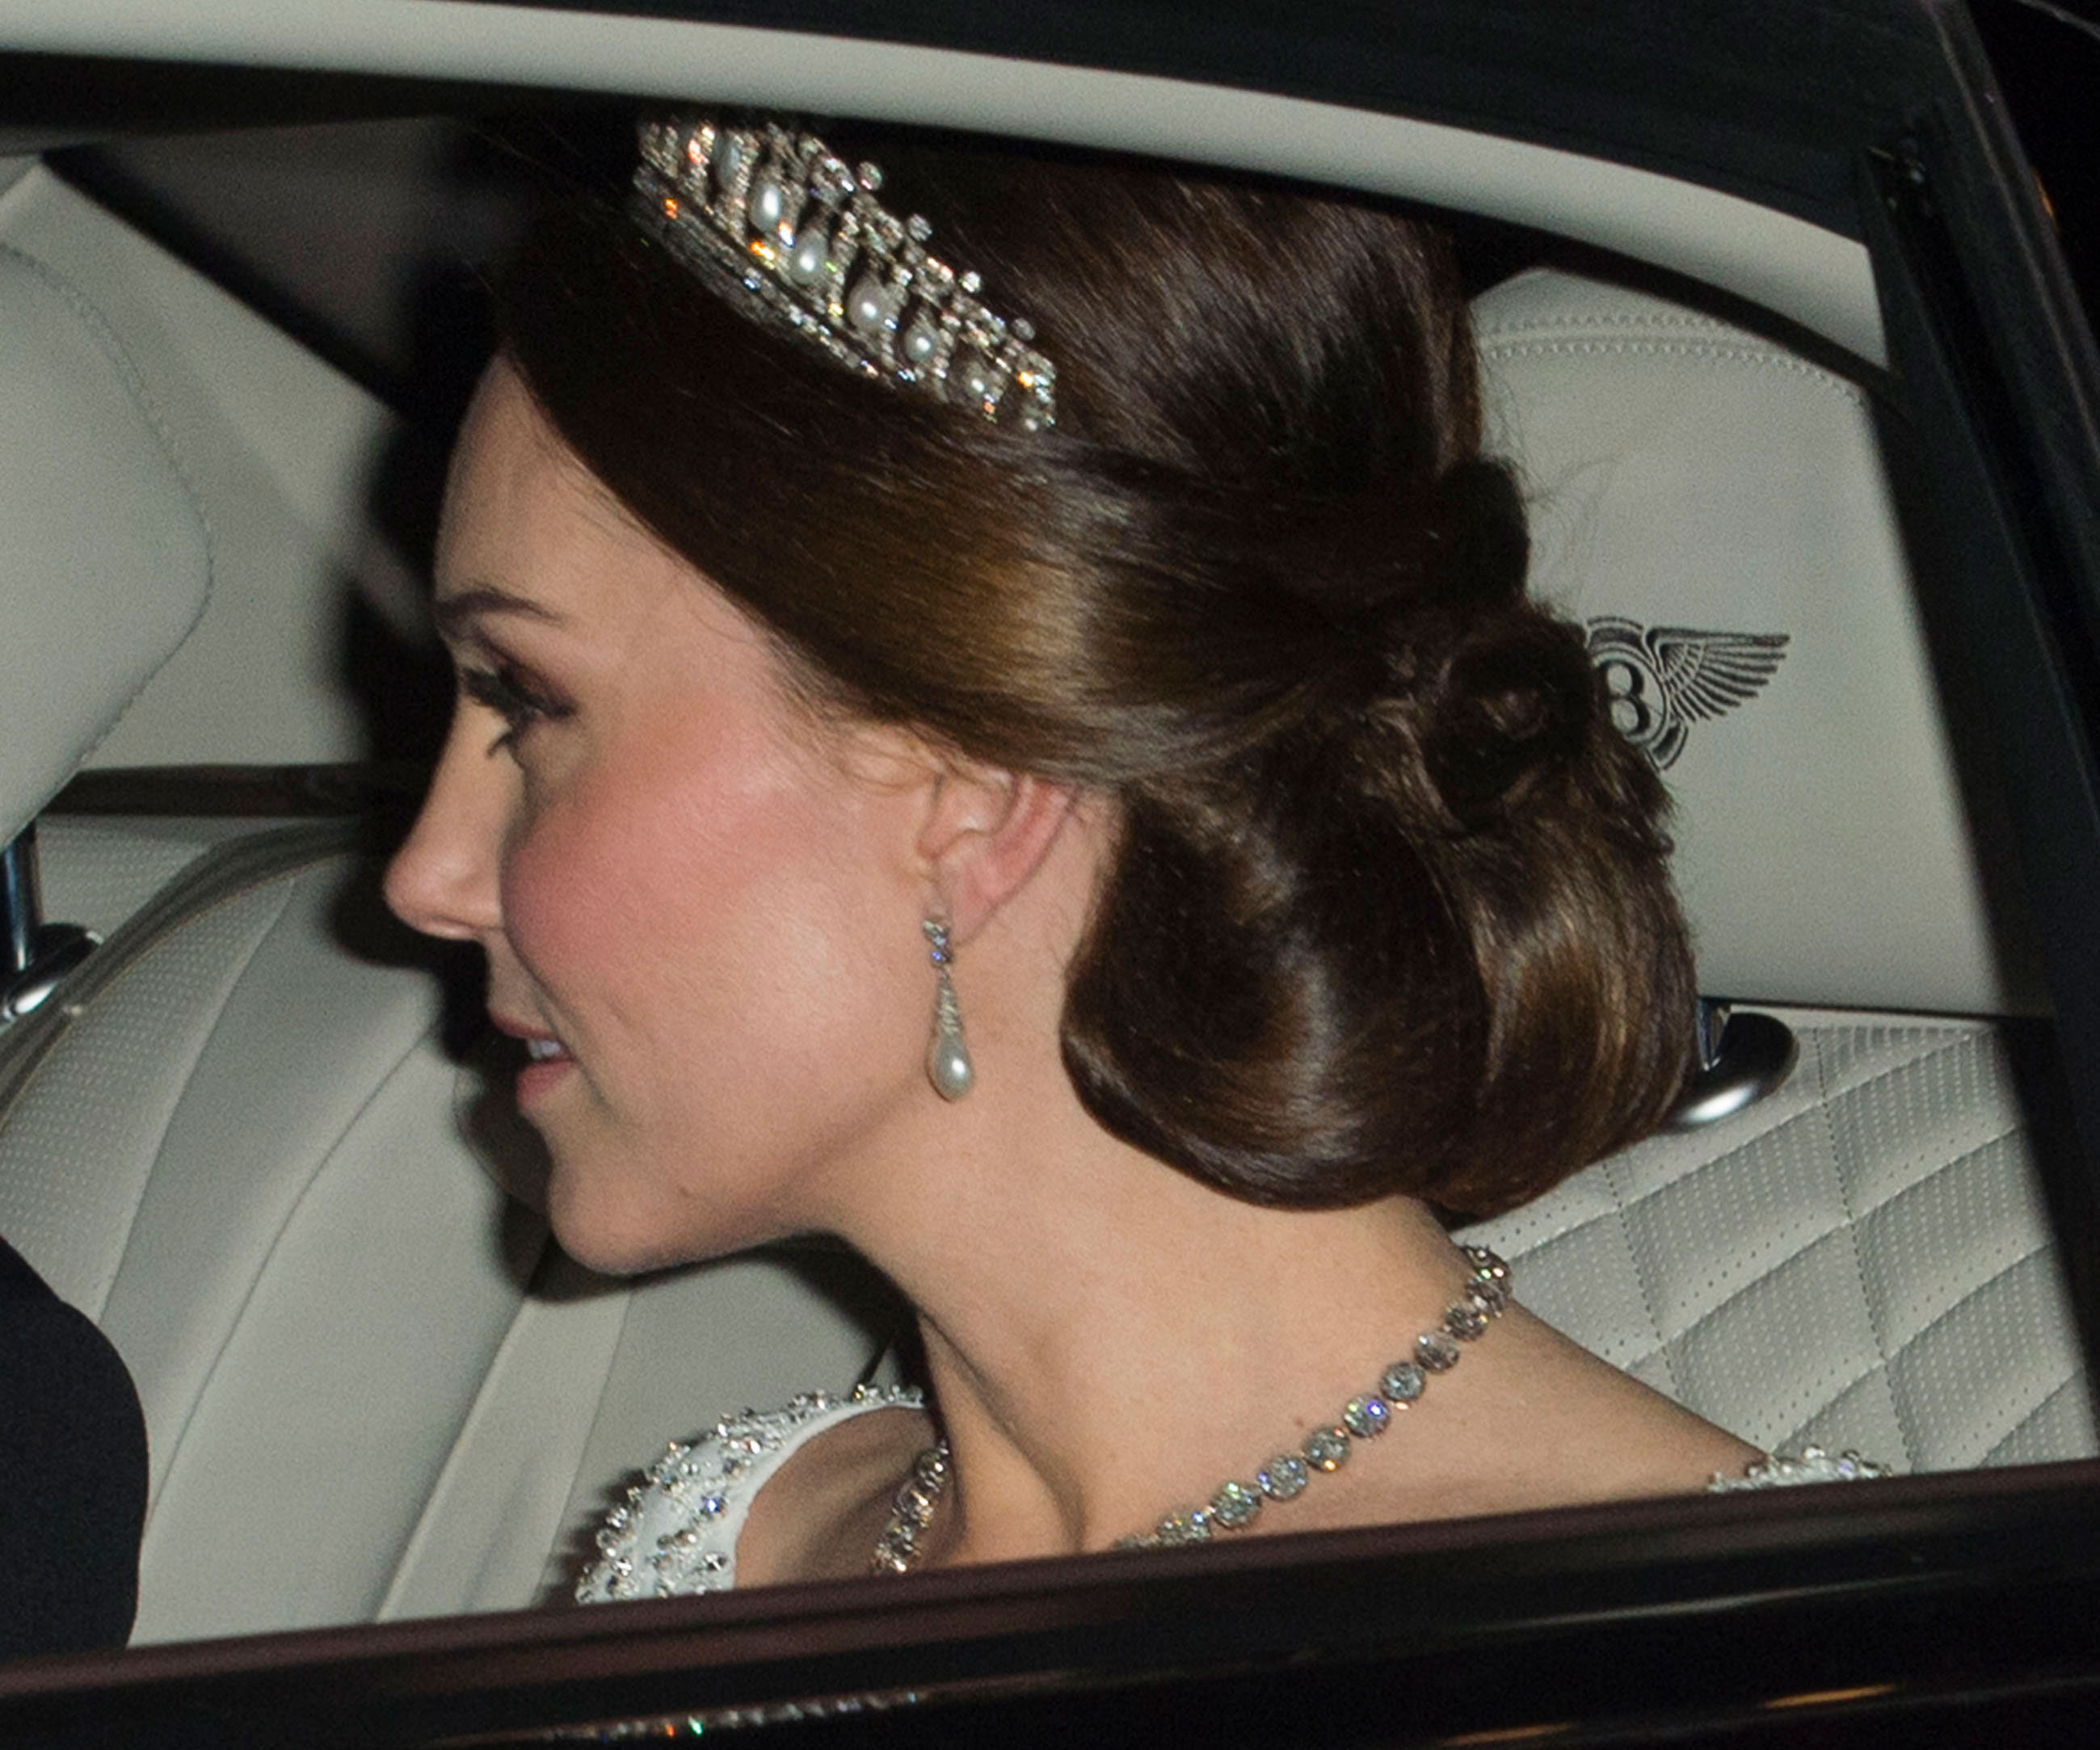 Kate Middleton steps out wearing lovely Diana hand-me-down